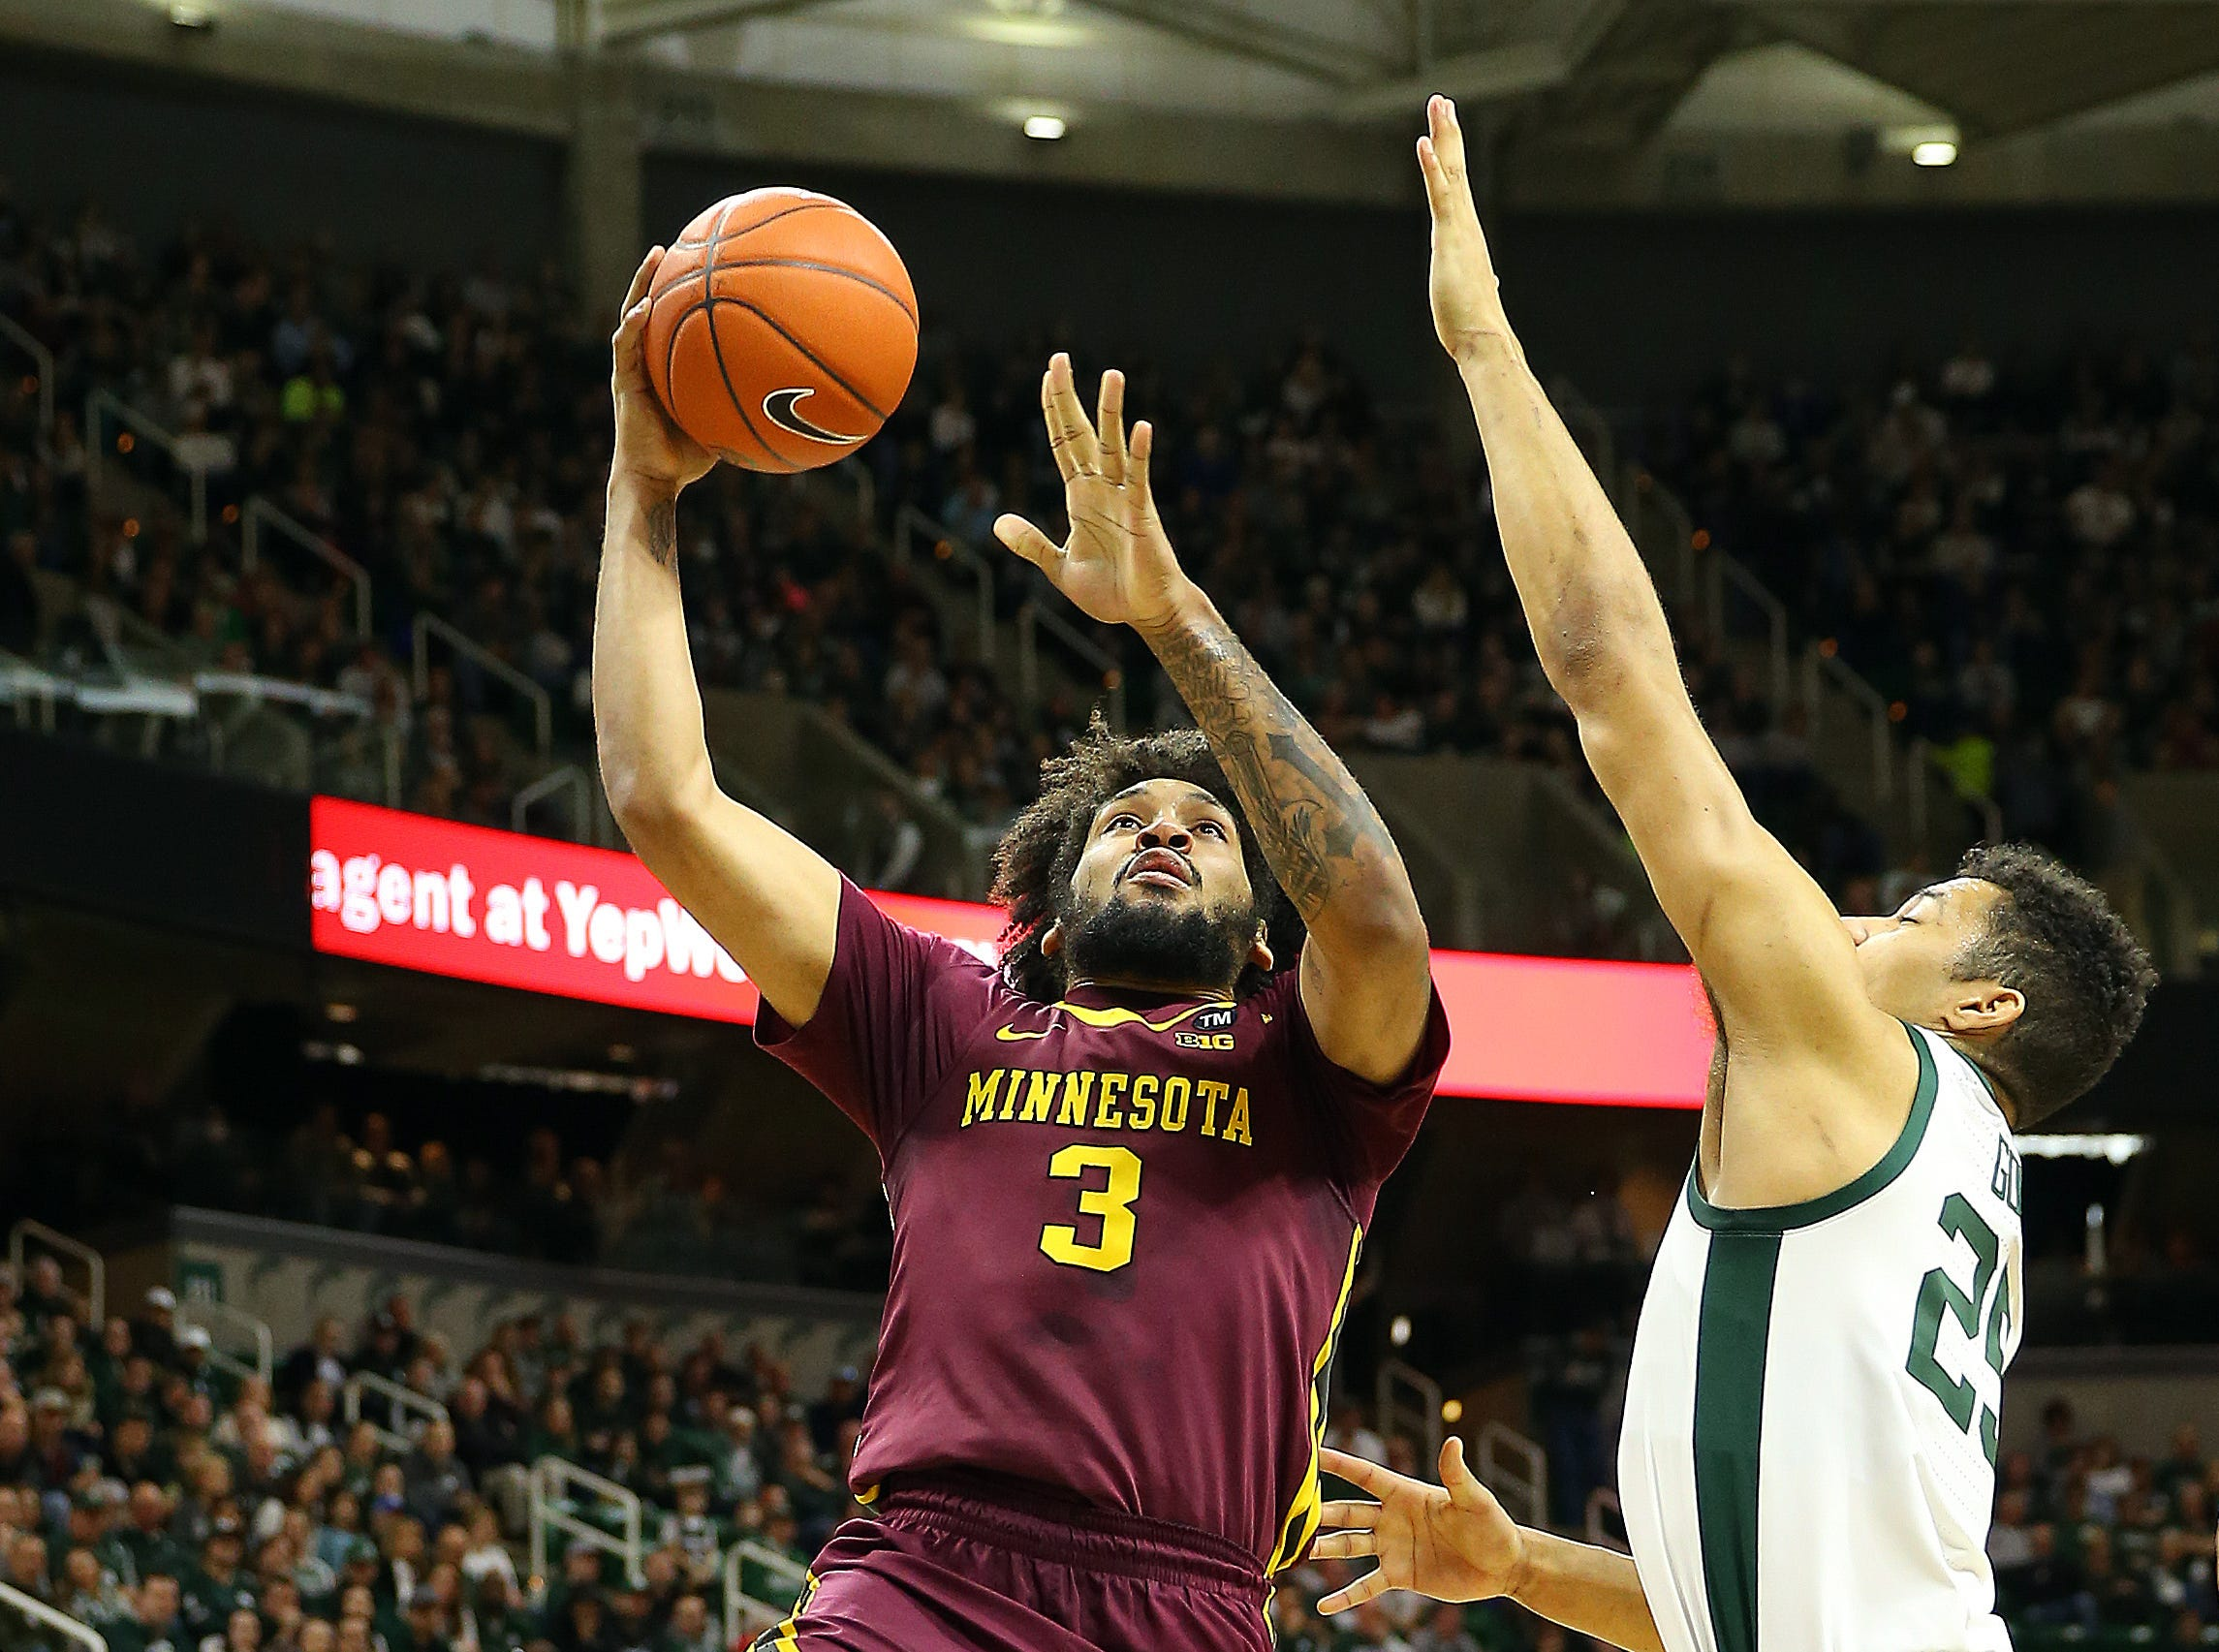 Feb 9, 2019; East Lansing, MI, USA; Minnesota Golden Gophers forward Jordan Murphy (3) drives to the basket against Michigan State Spartans forward Kenny Goins (25) during the first half at the Breslin Center. Mandatory Credit: Mike Carter-USA TODAY Sports